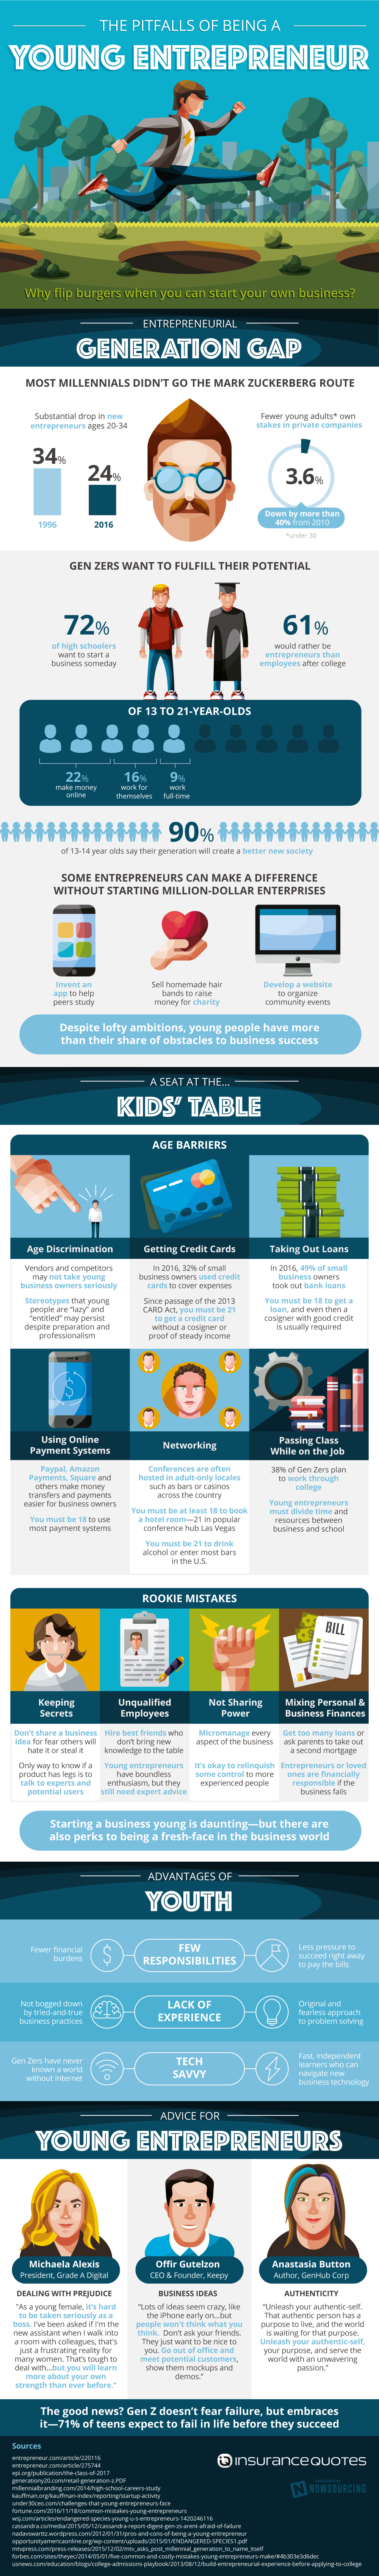 Pitfalls of Young Entrepreneurs #infographic